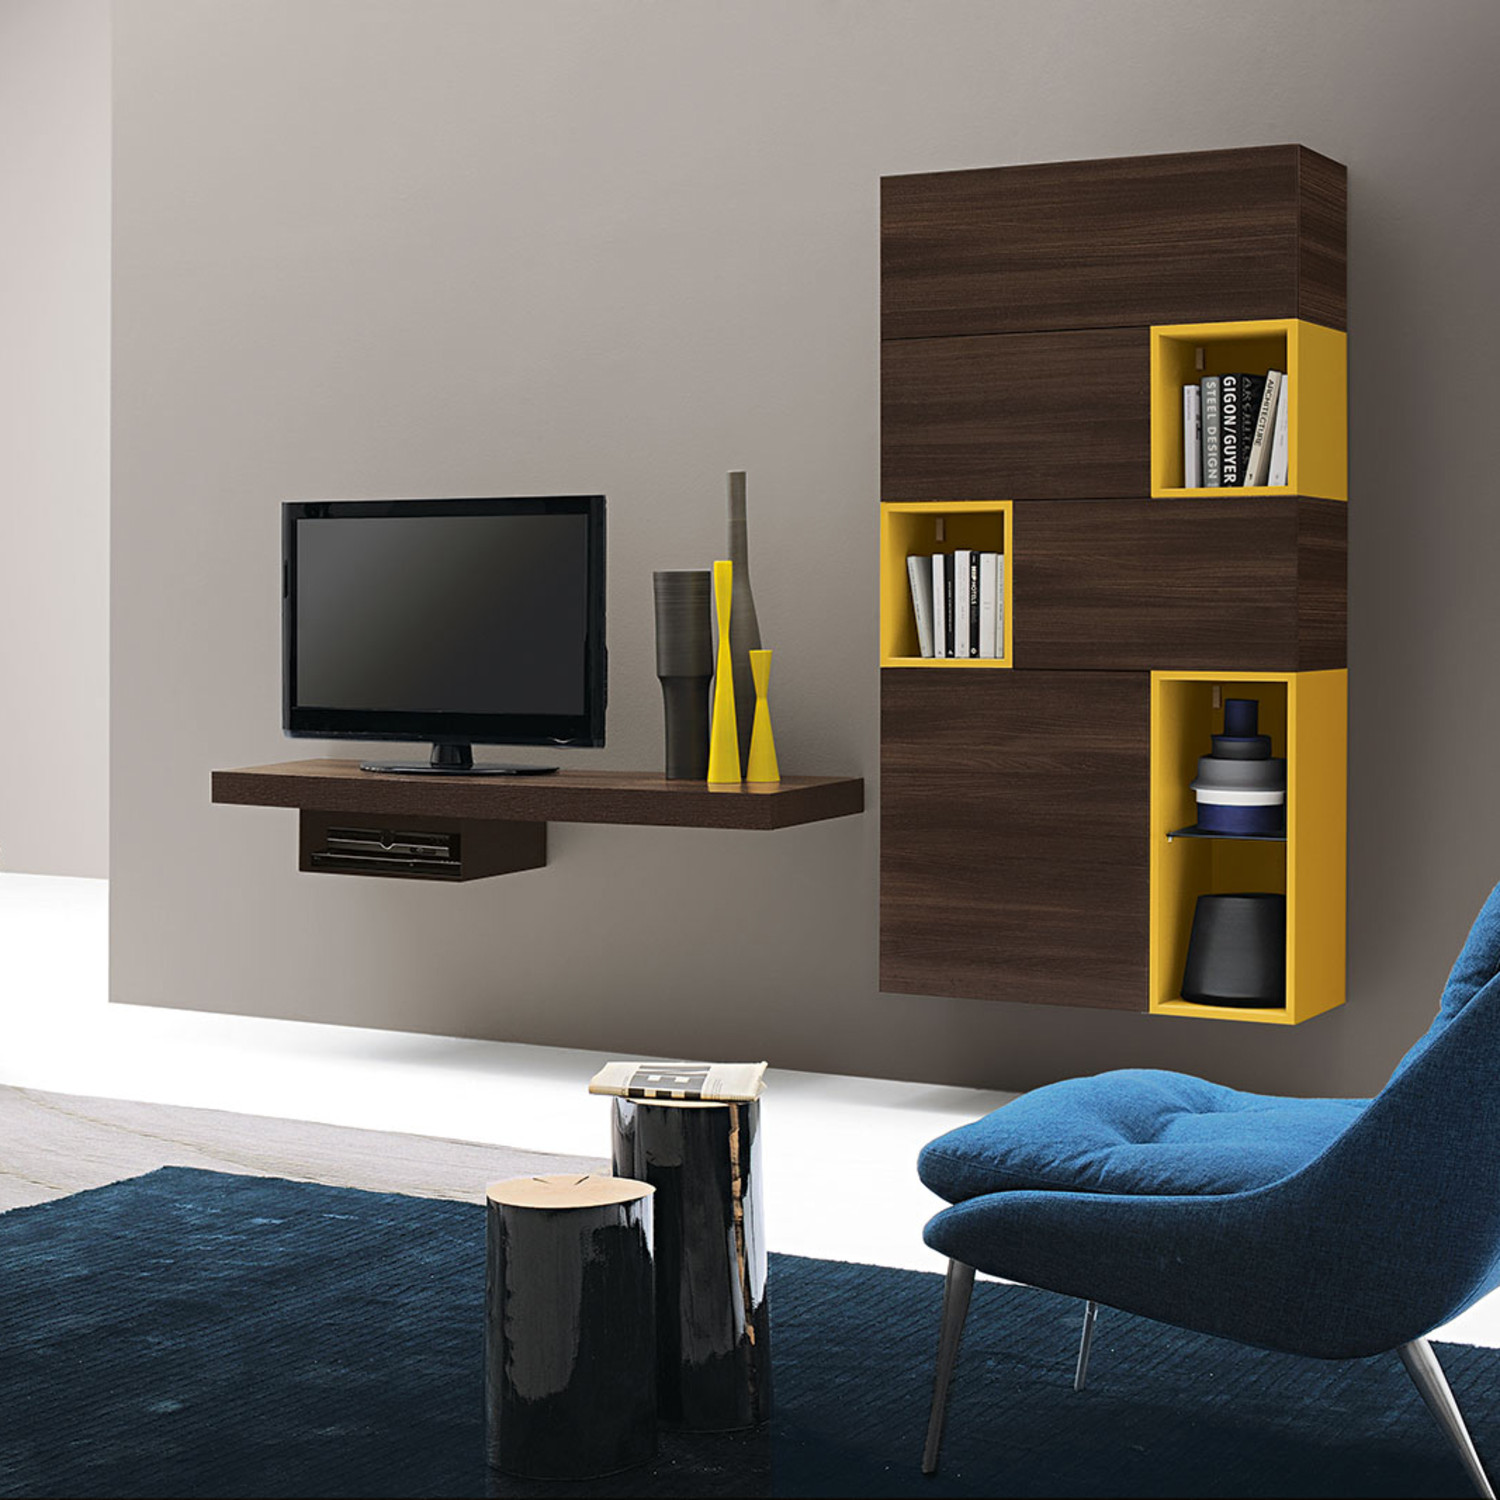 https://www.touchofmodern.com/sales/modloft-living-a66c92c5-f601-4bb1-9ec7-f6793353394c/cesena-wall-unit-dark-elm-yolk?share_invite_token=WQ3PD6V0